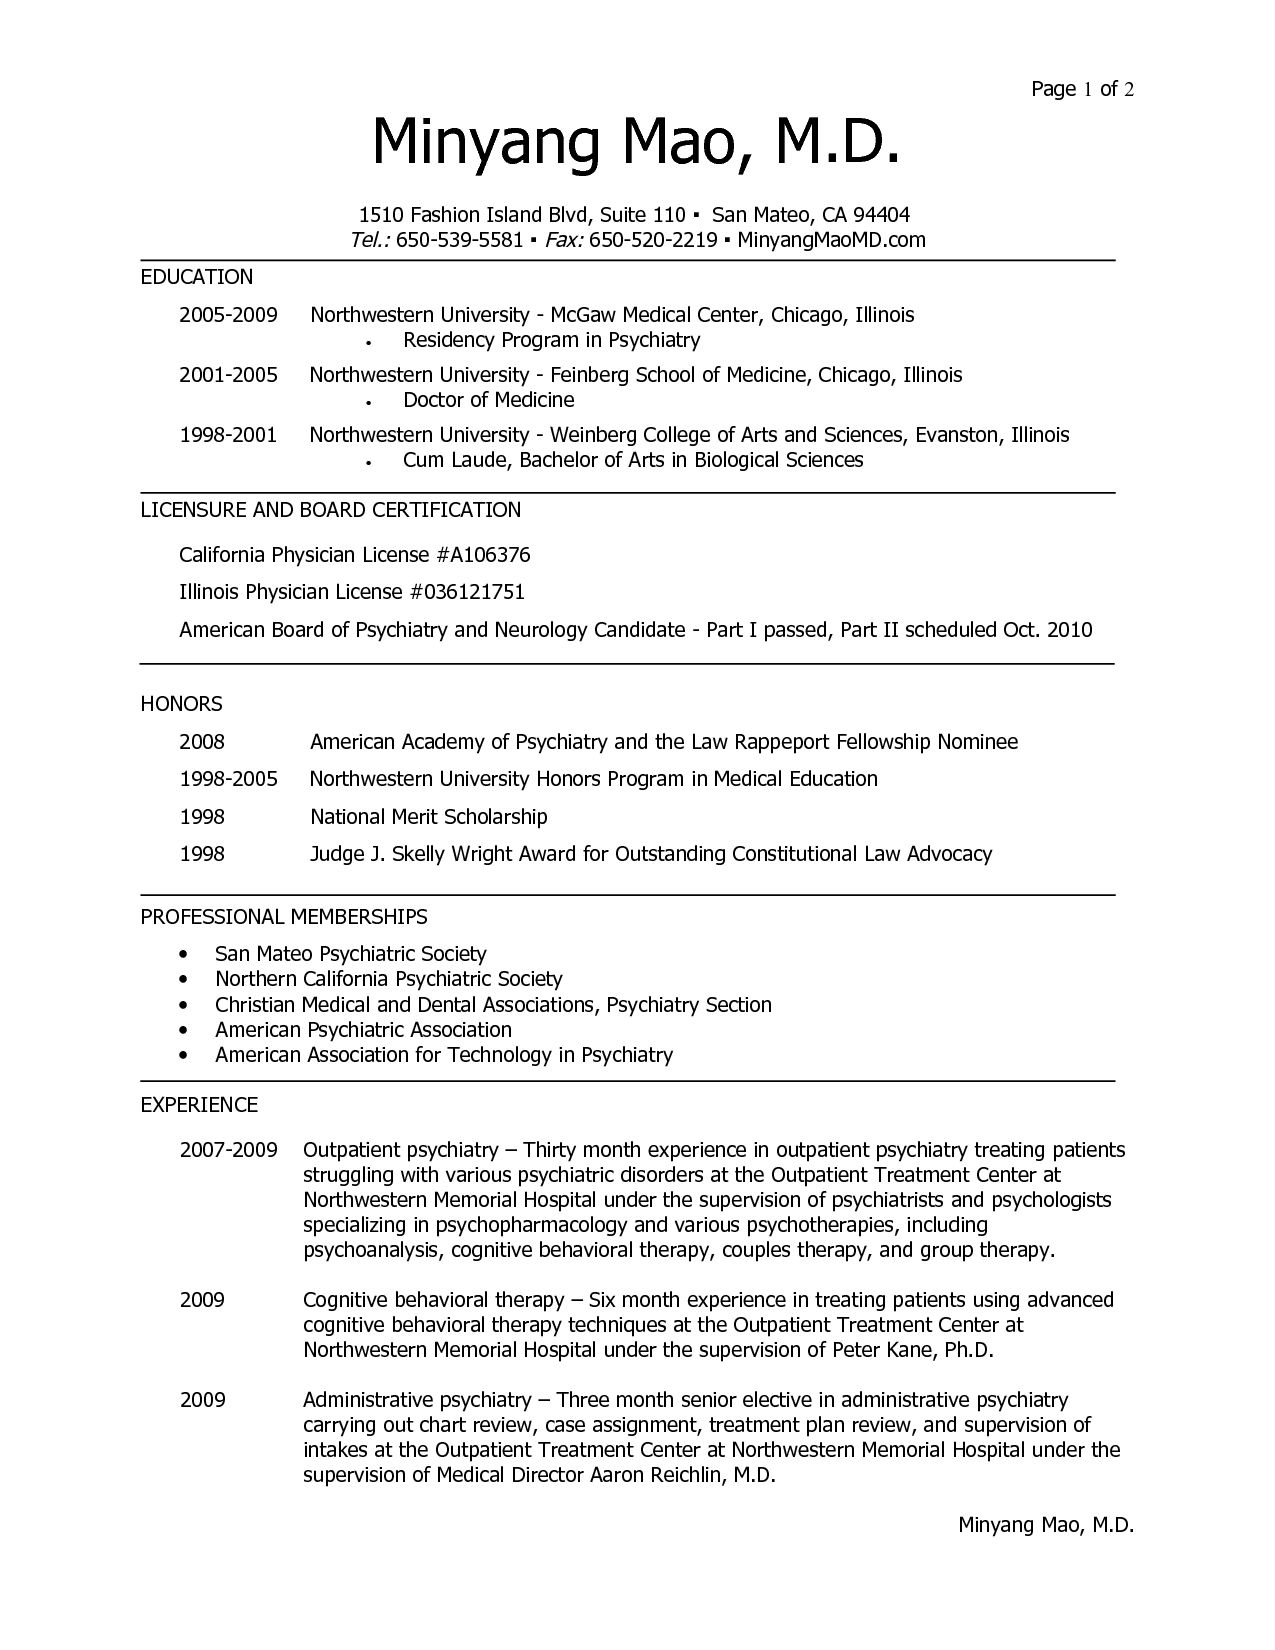 medical school cv template east keywesthideaways co